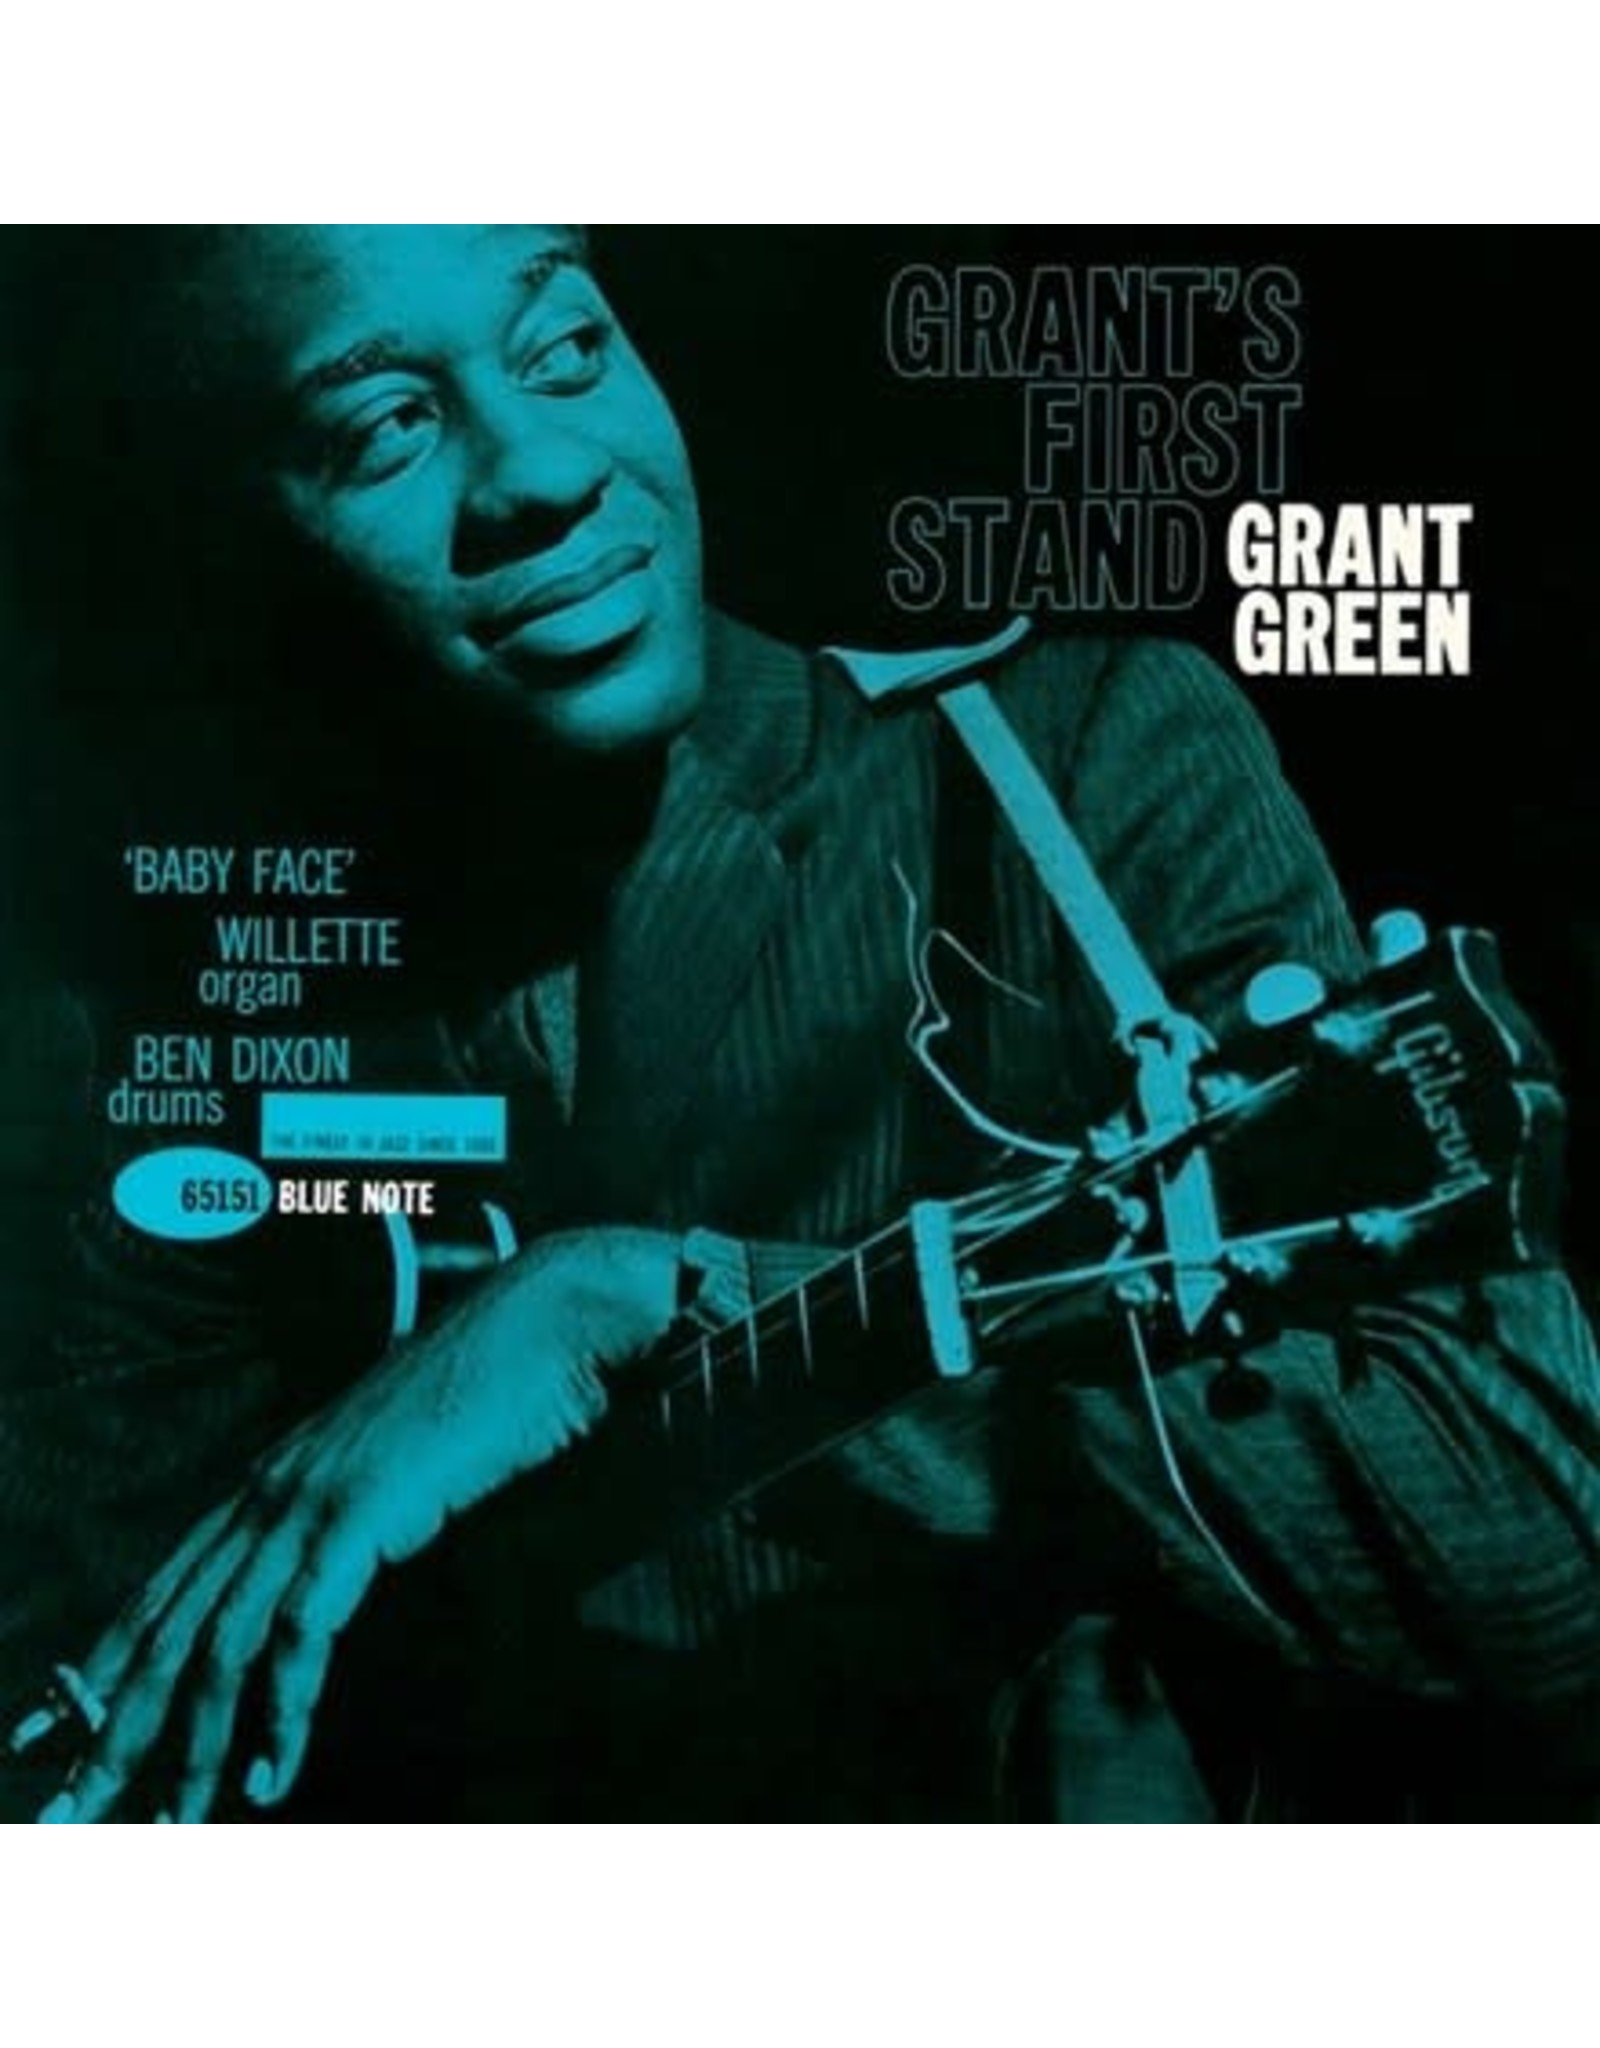 Blue Note Green, Grant: Grant's First Stand LP